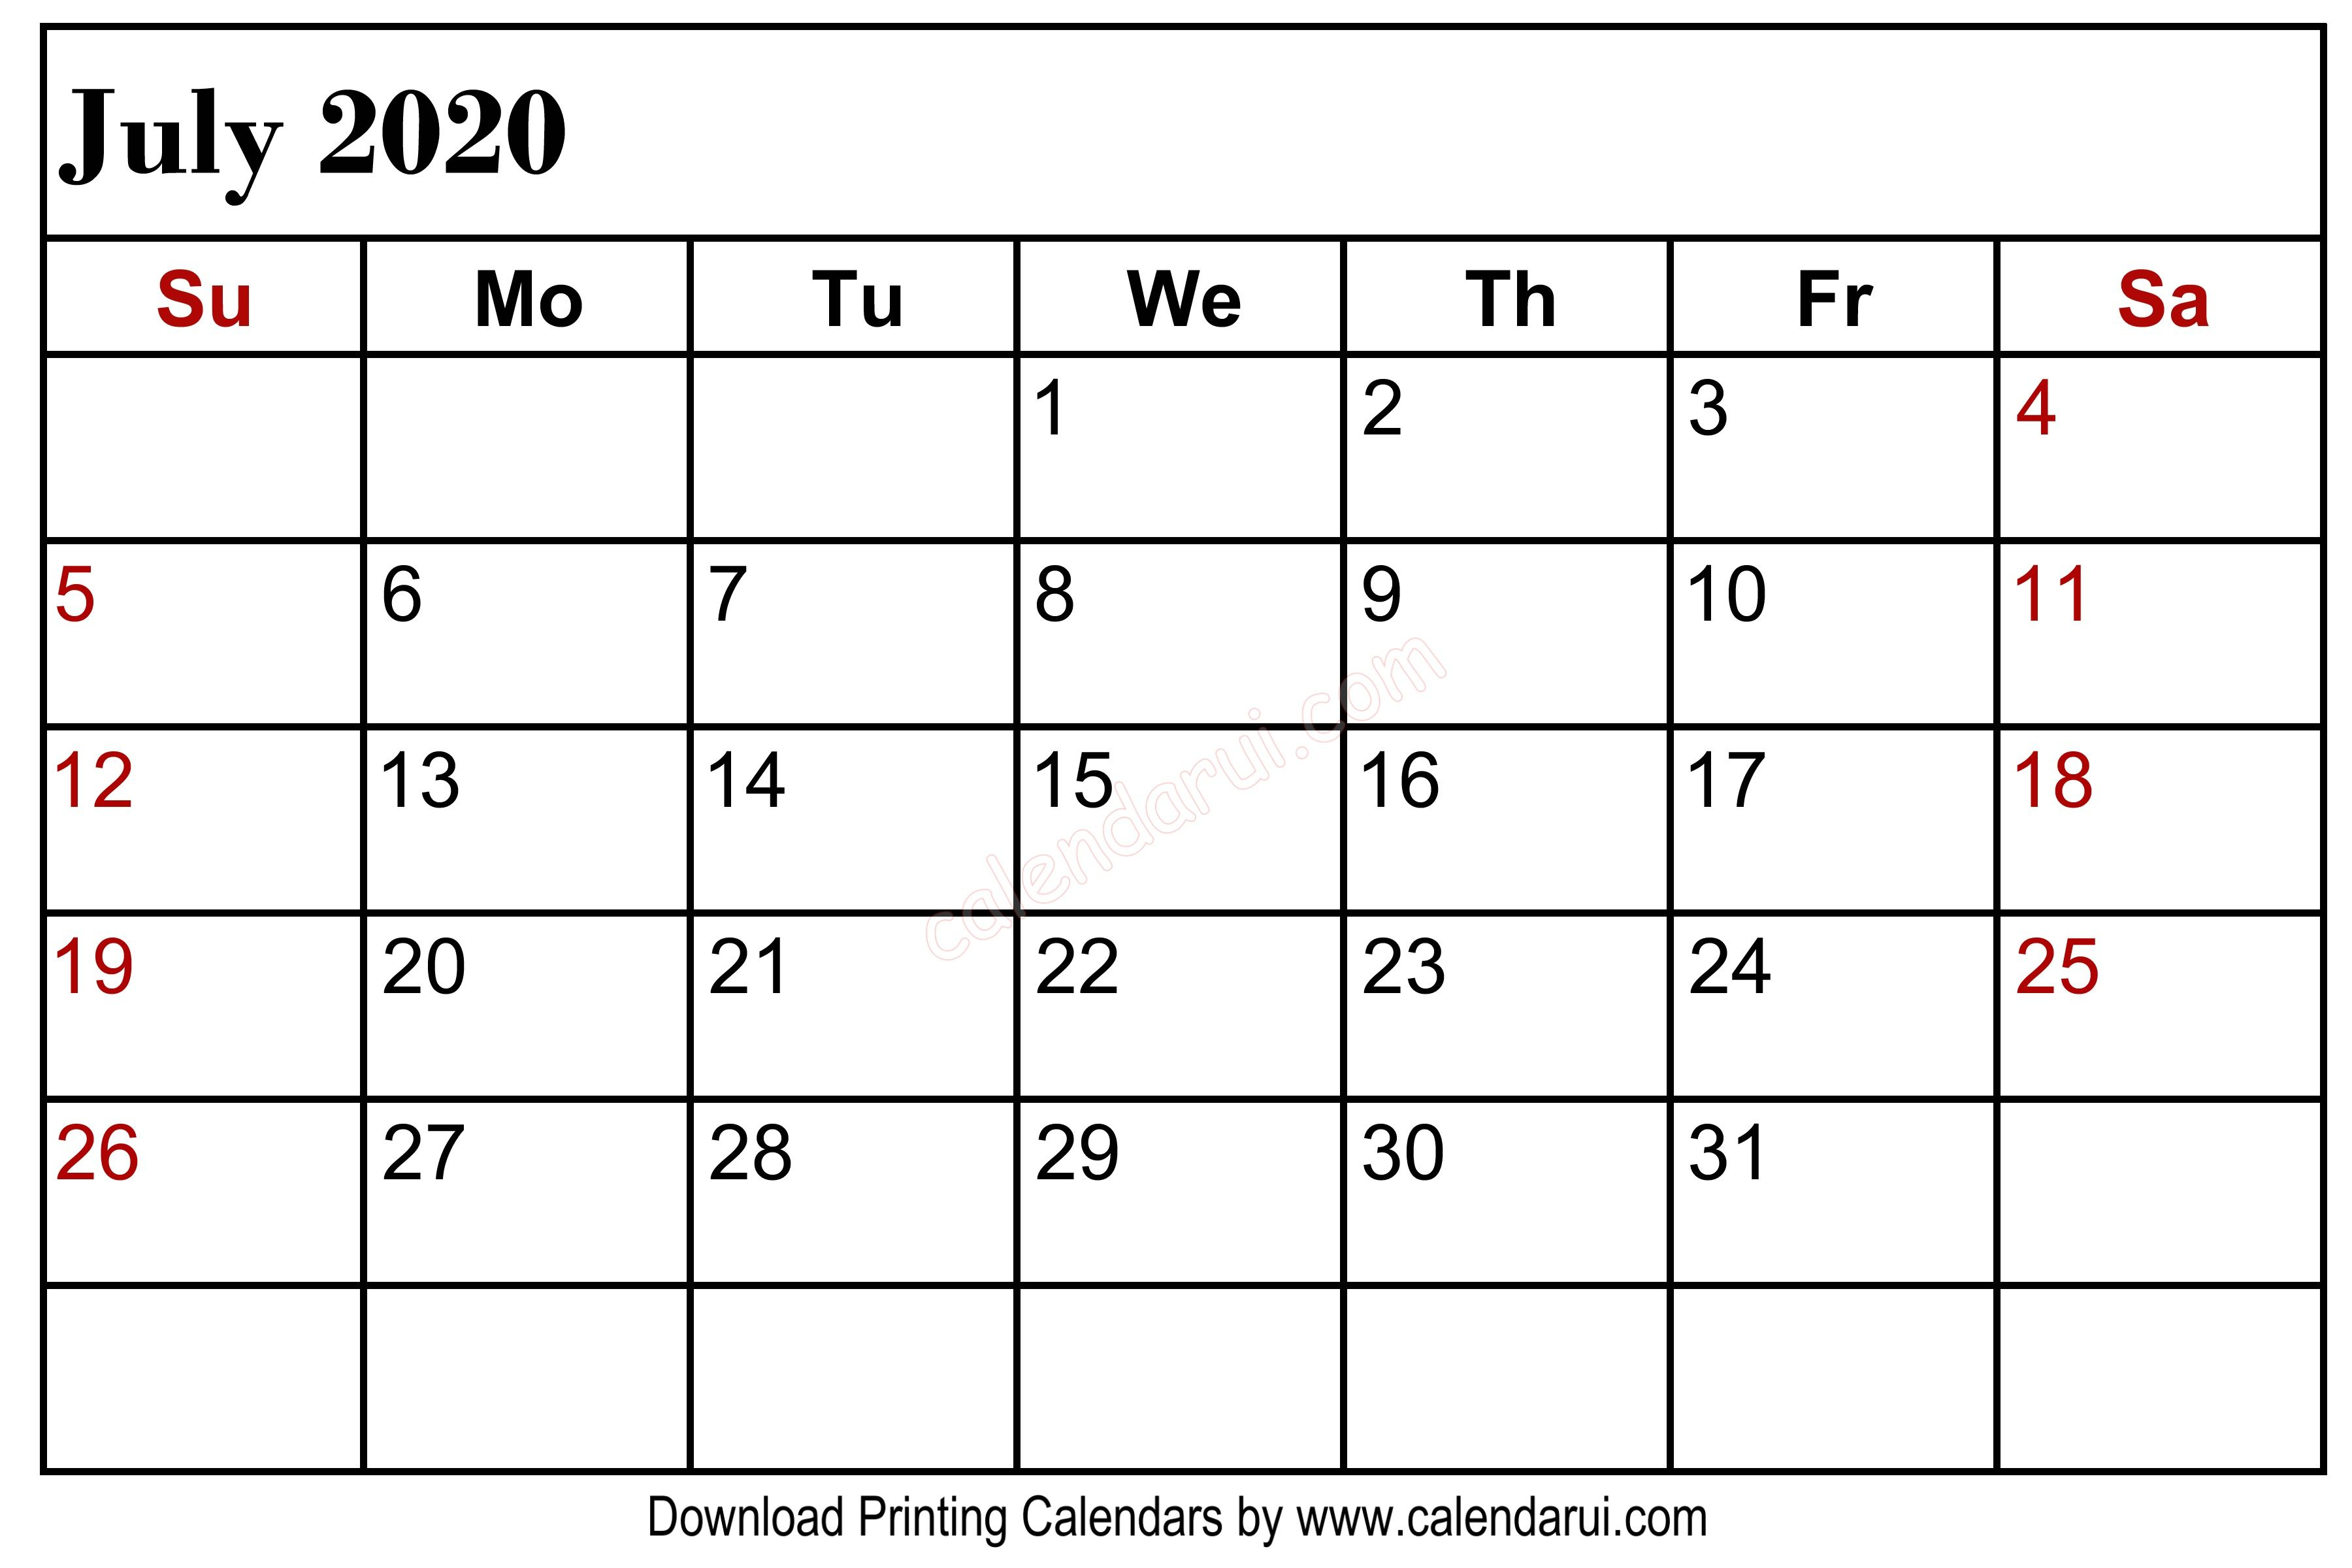 July 2020 Blank Calendar Printable Free Download 1 | Monthly for Monthly Calendar With Time Slots 2020